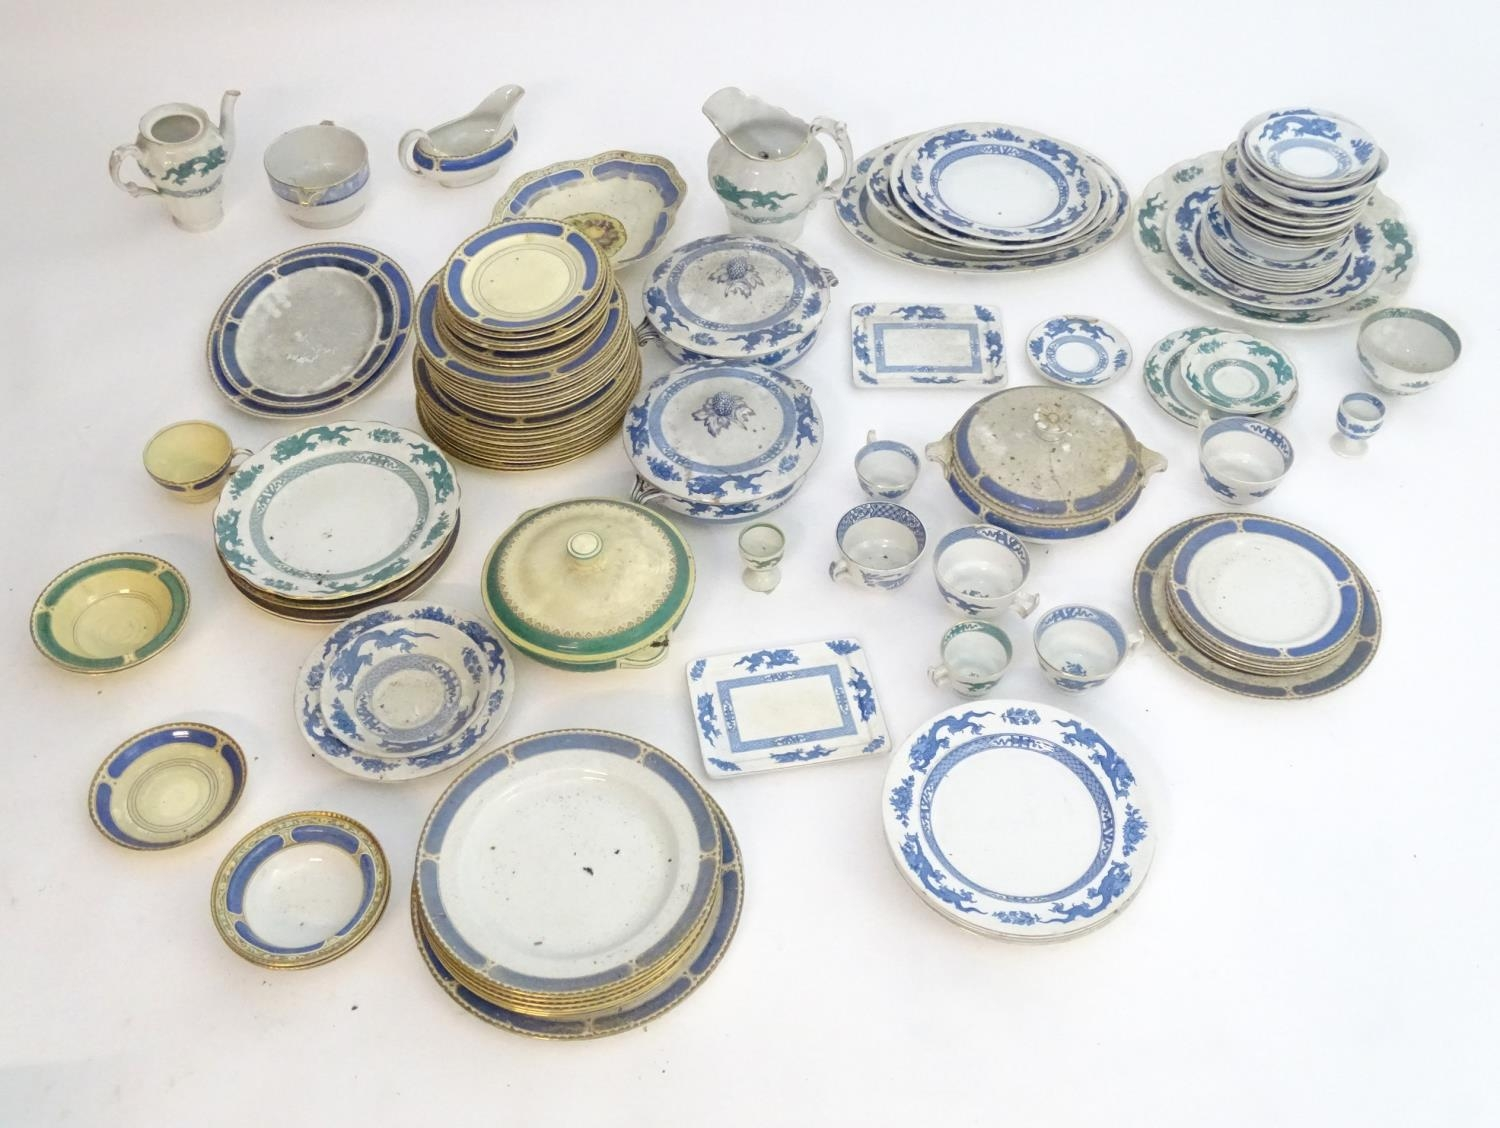 A large quantity of assorted Booths china to include teapots, plates, tureens, jugs, serving dishes, - Image 3 of 17